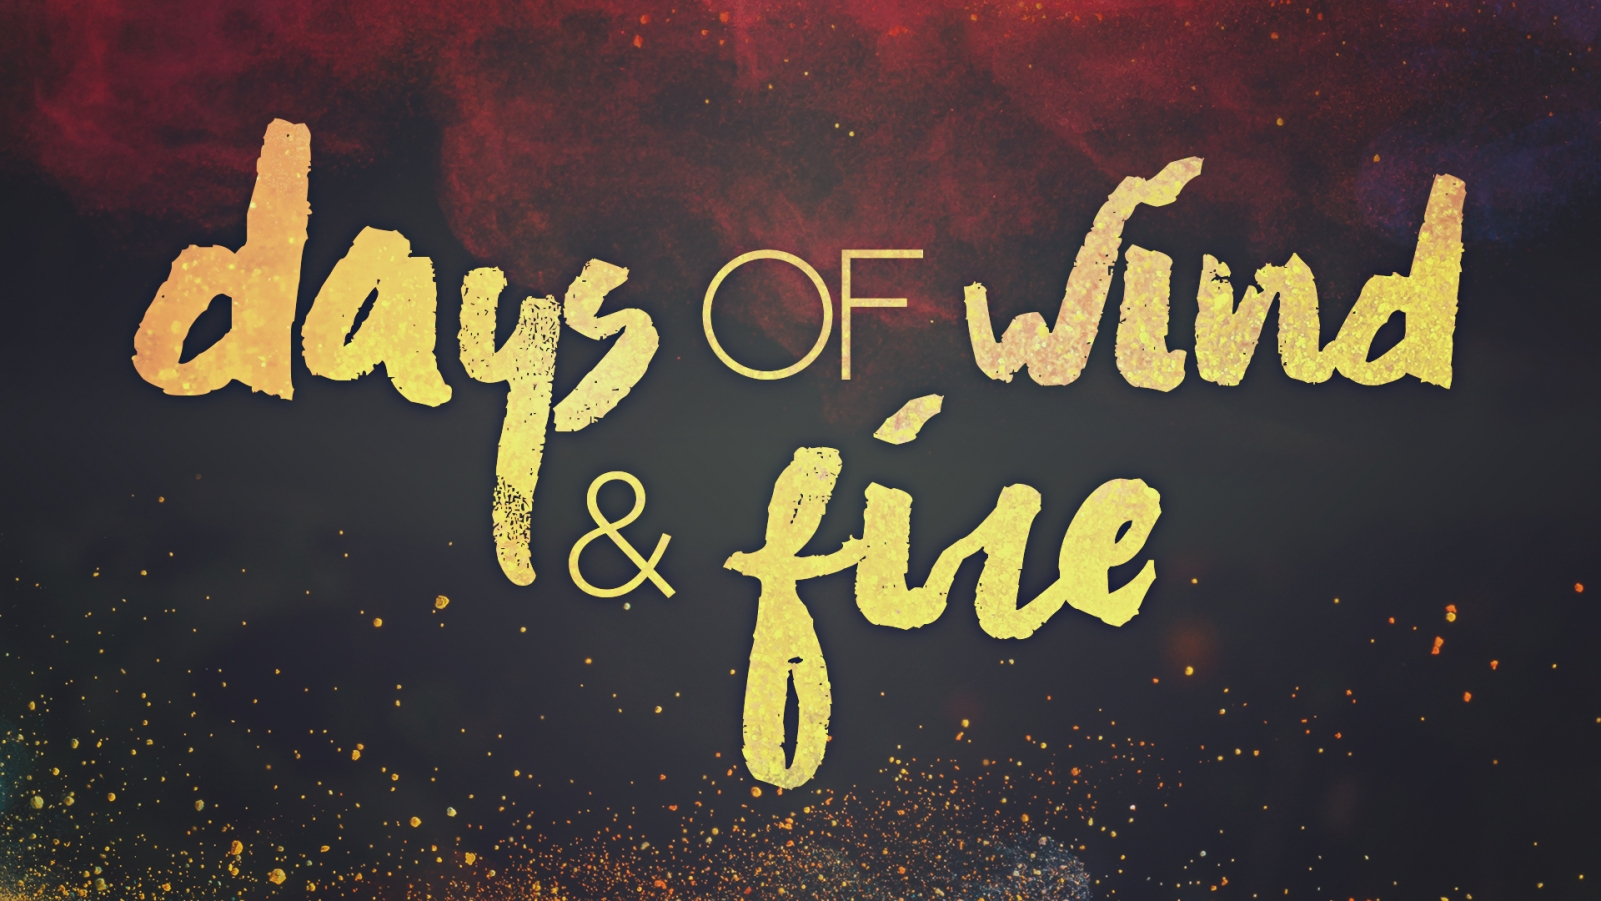 Days of Wind & Fire